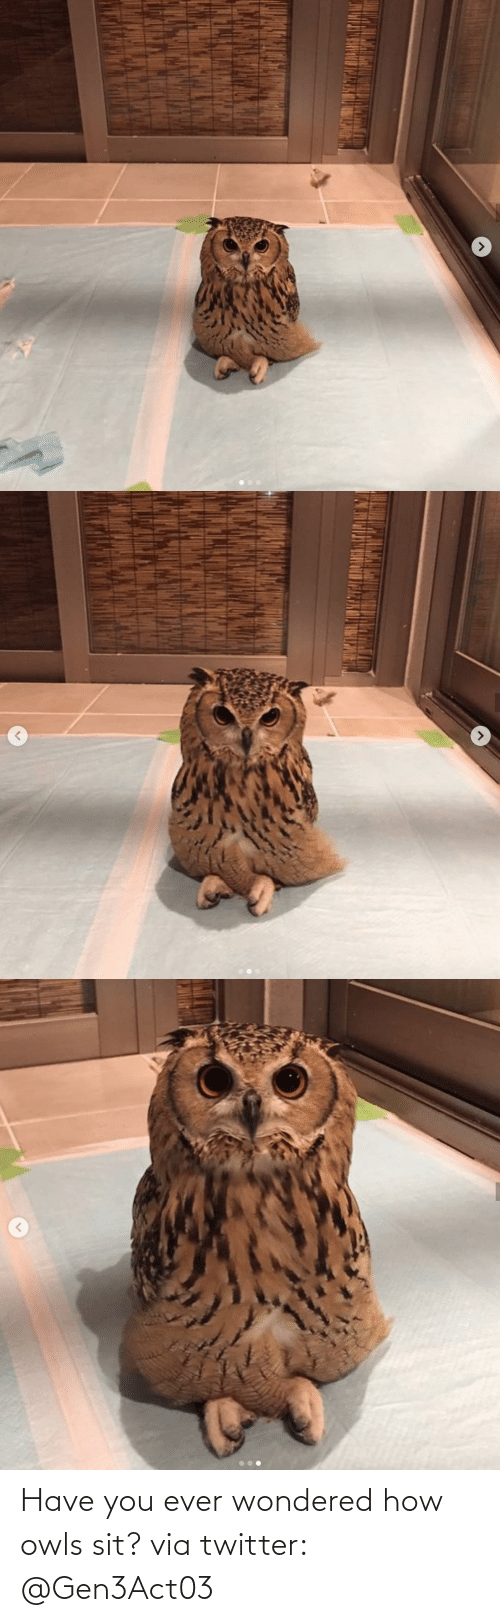 Have You: Have you ever wondered how owls sit? via twitter: @Gen3Act03